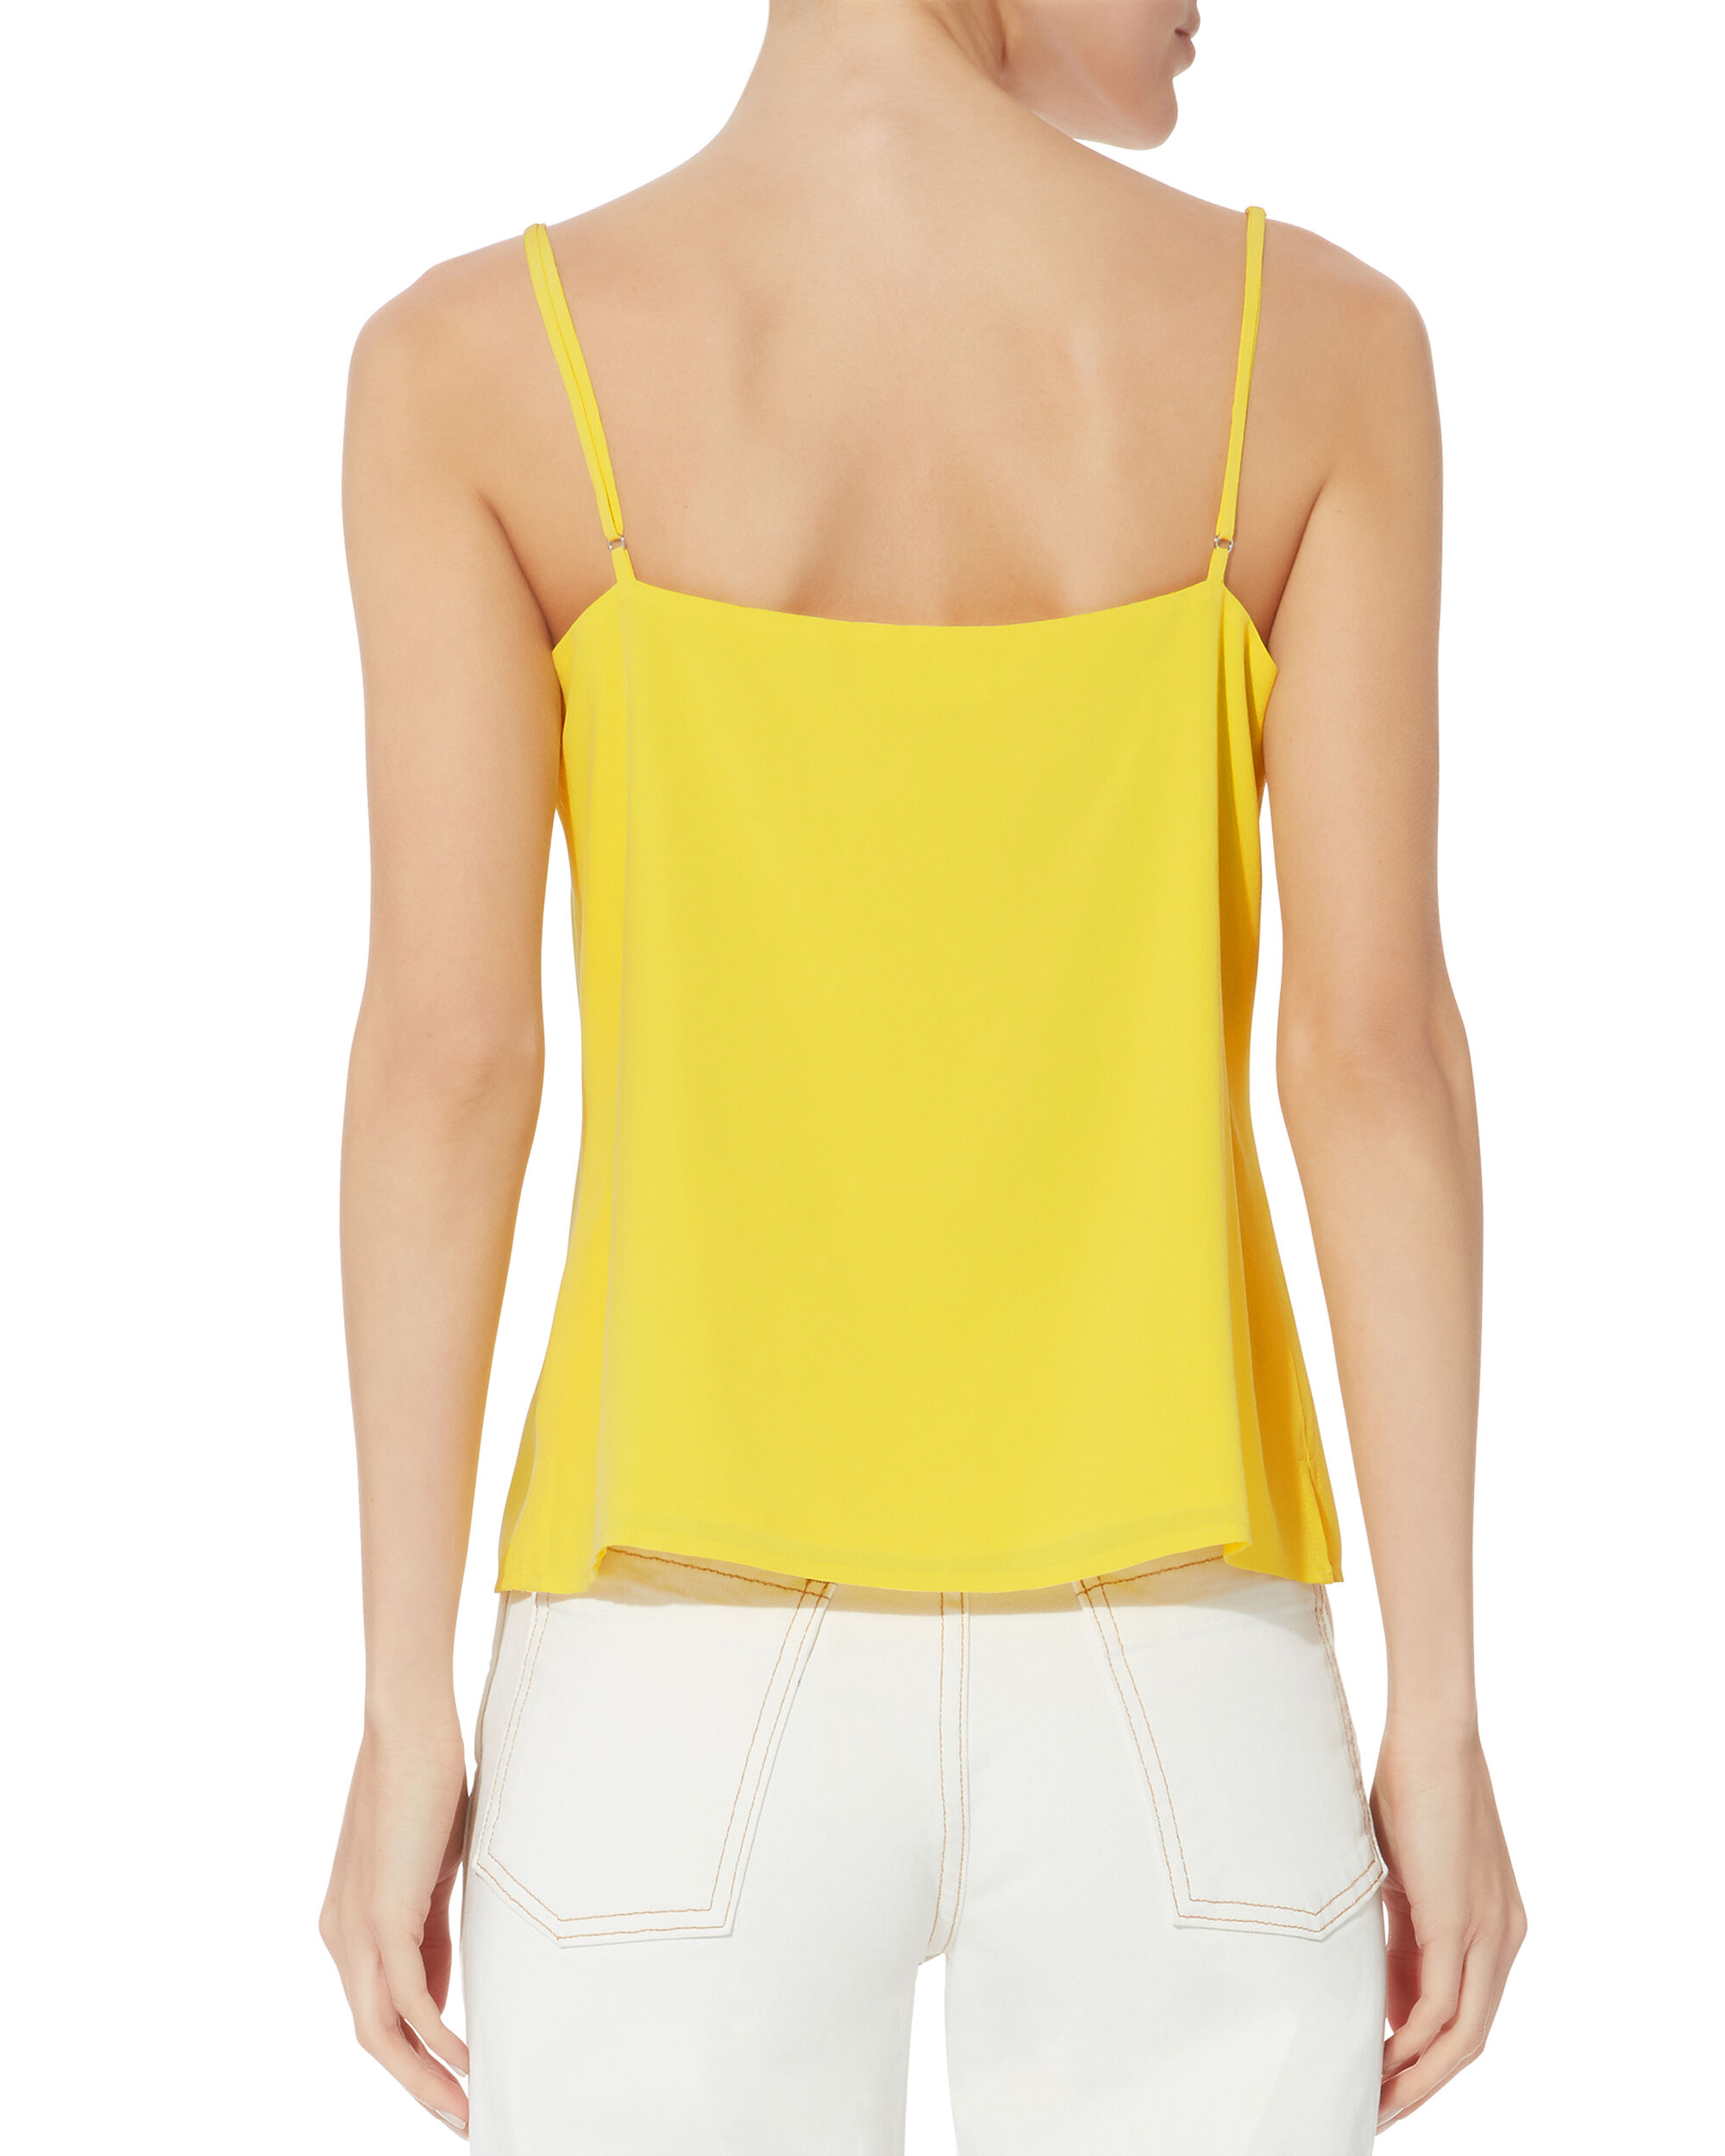 Jane Yellow Tank, YELLOW, hi-res